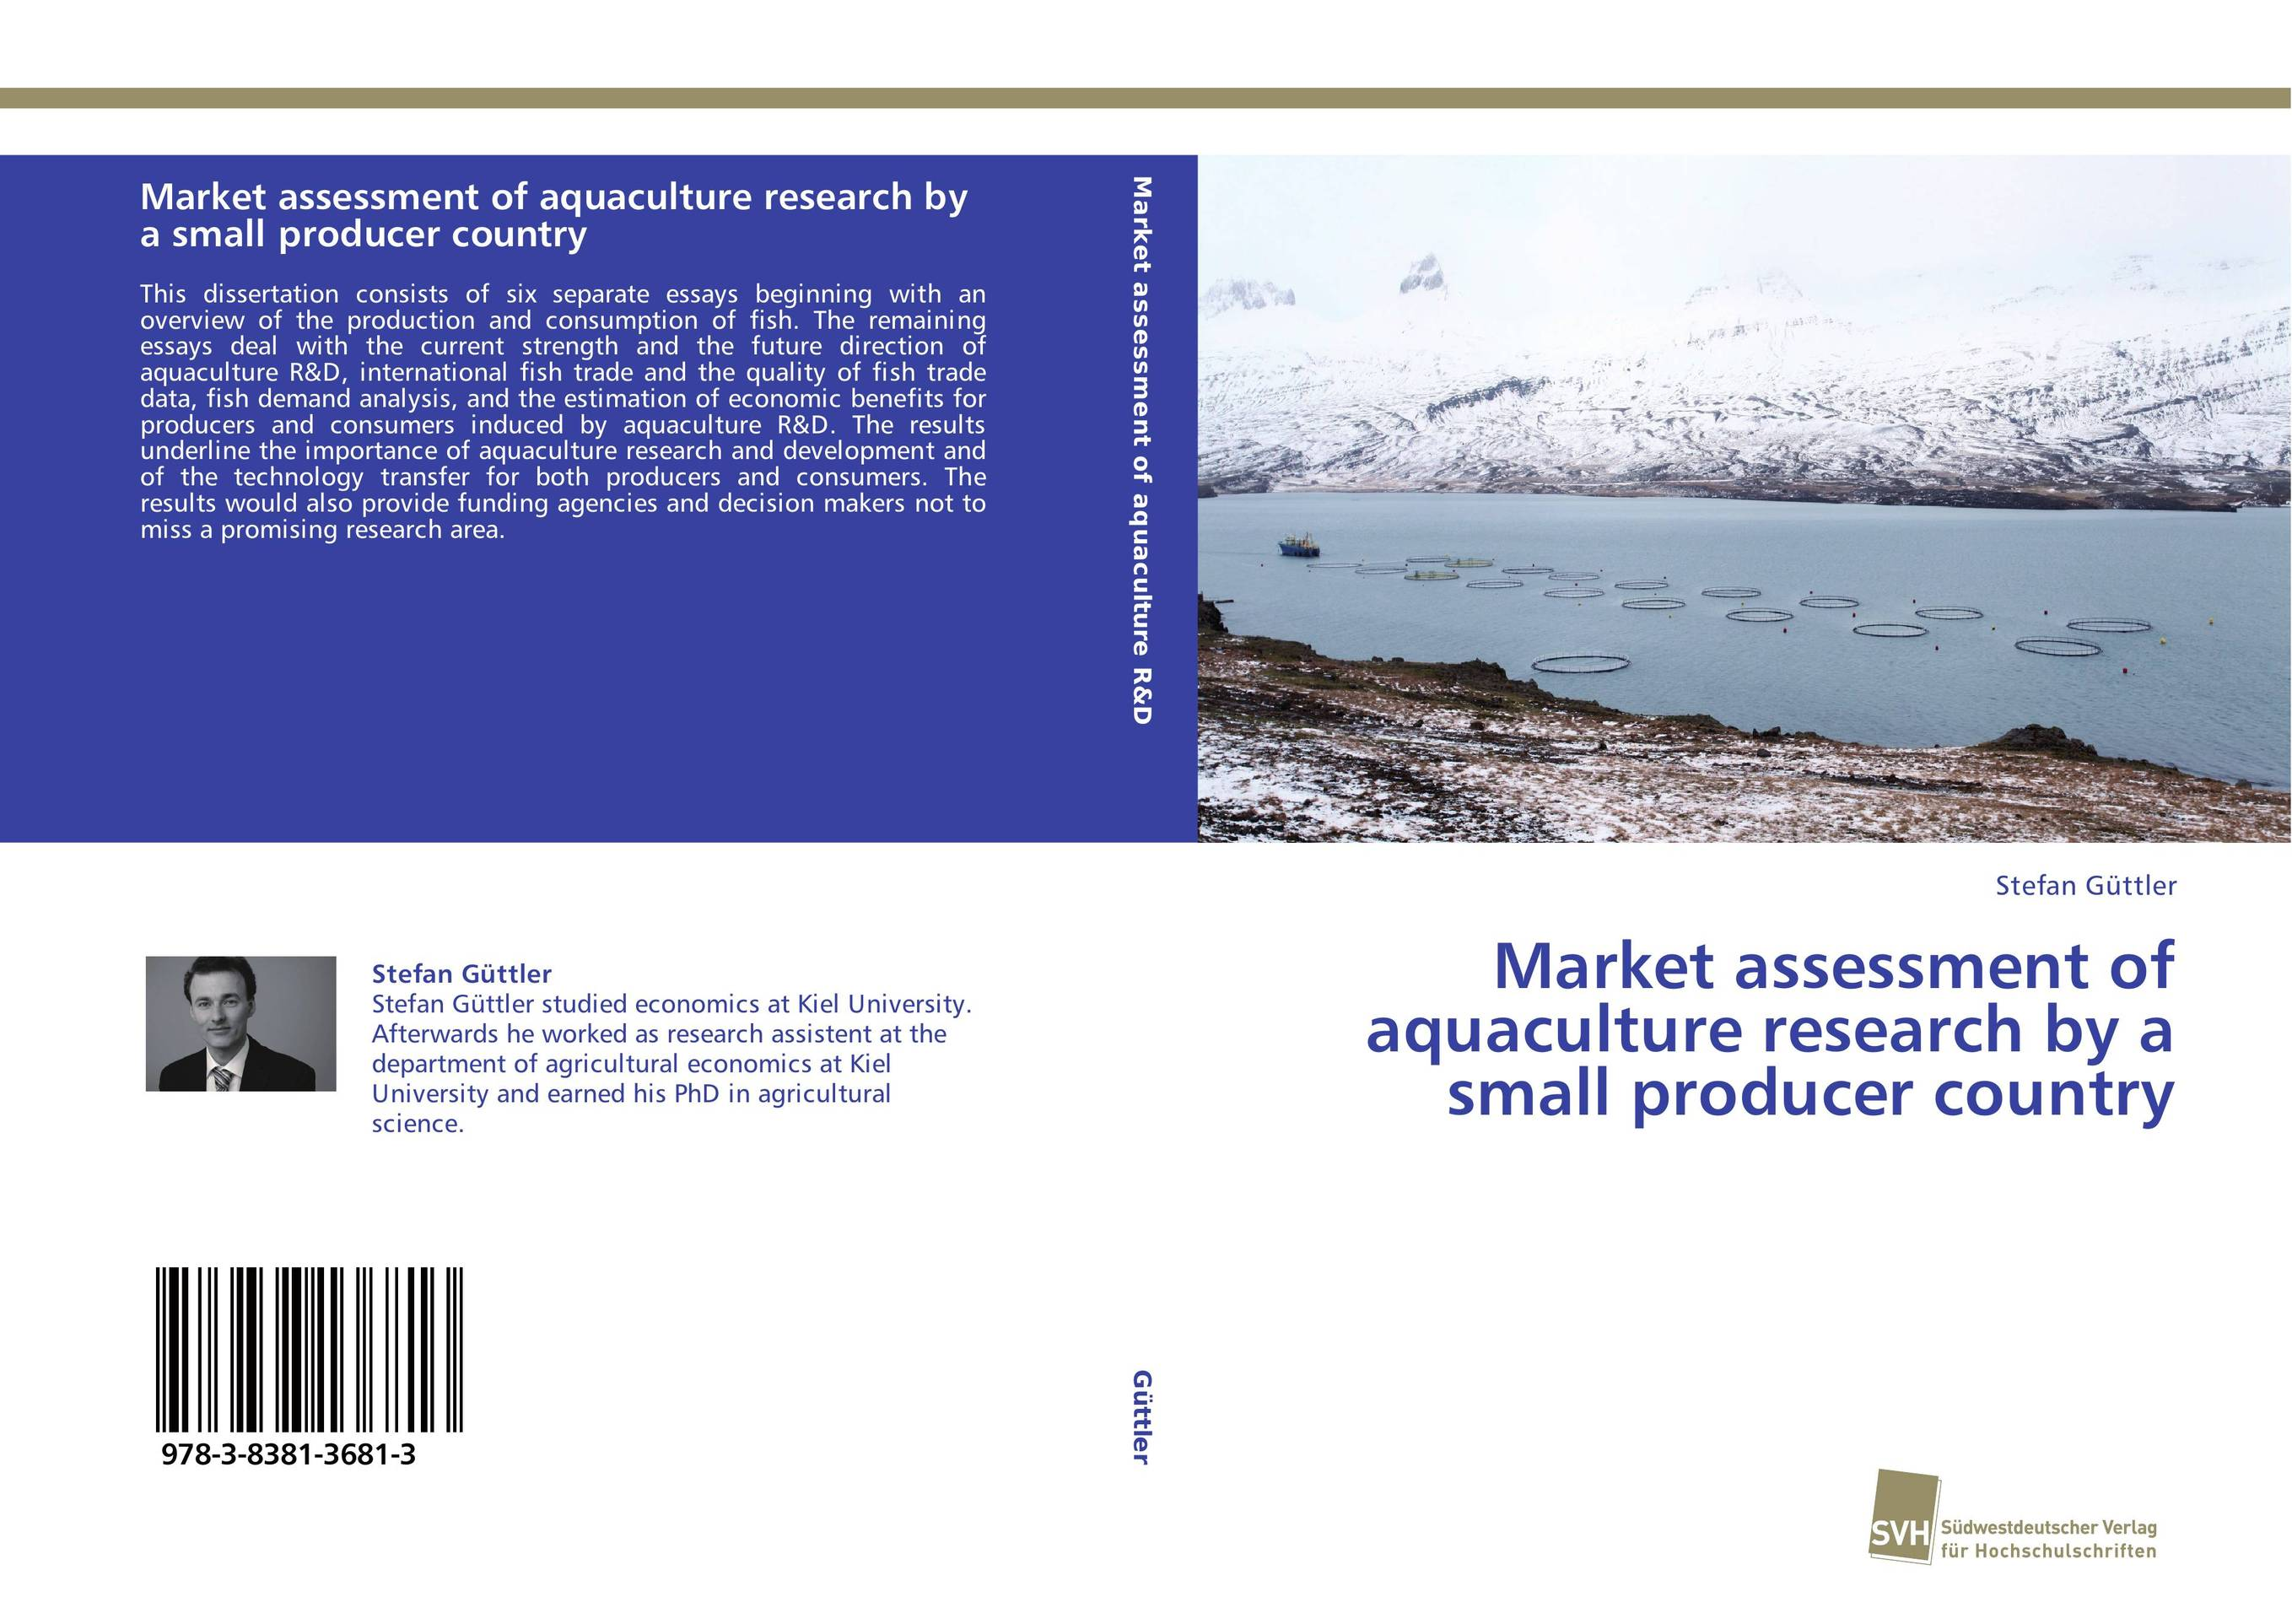 Market assessment of aquaculture research by a small producer country